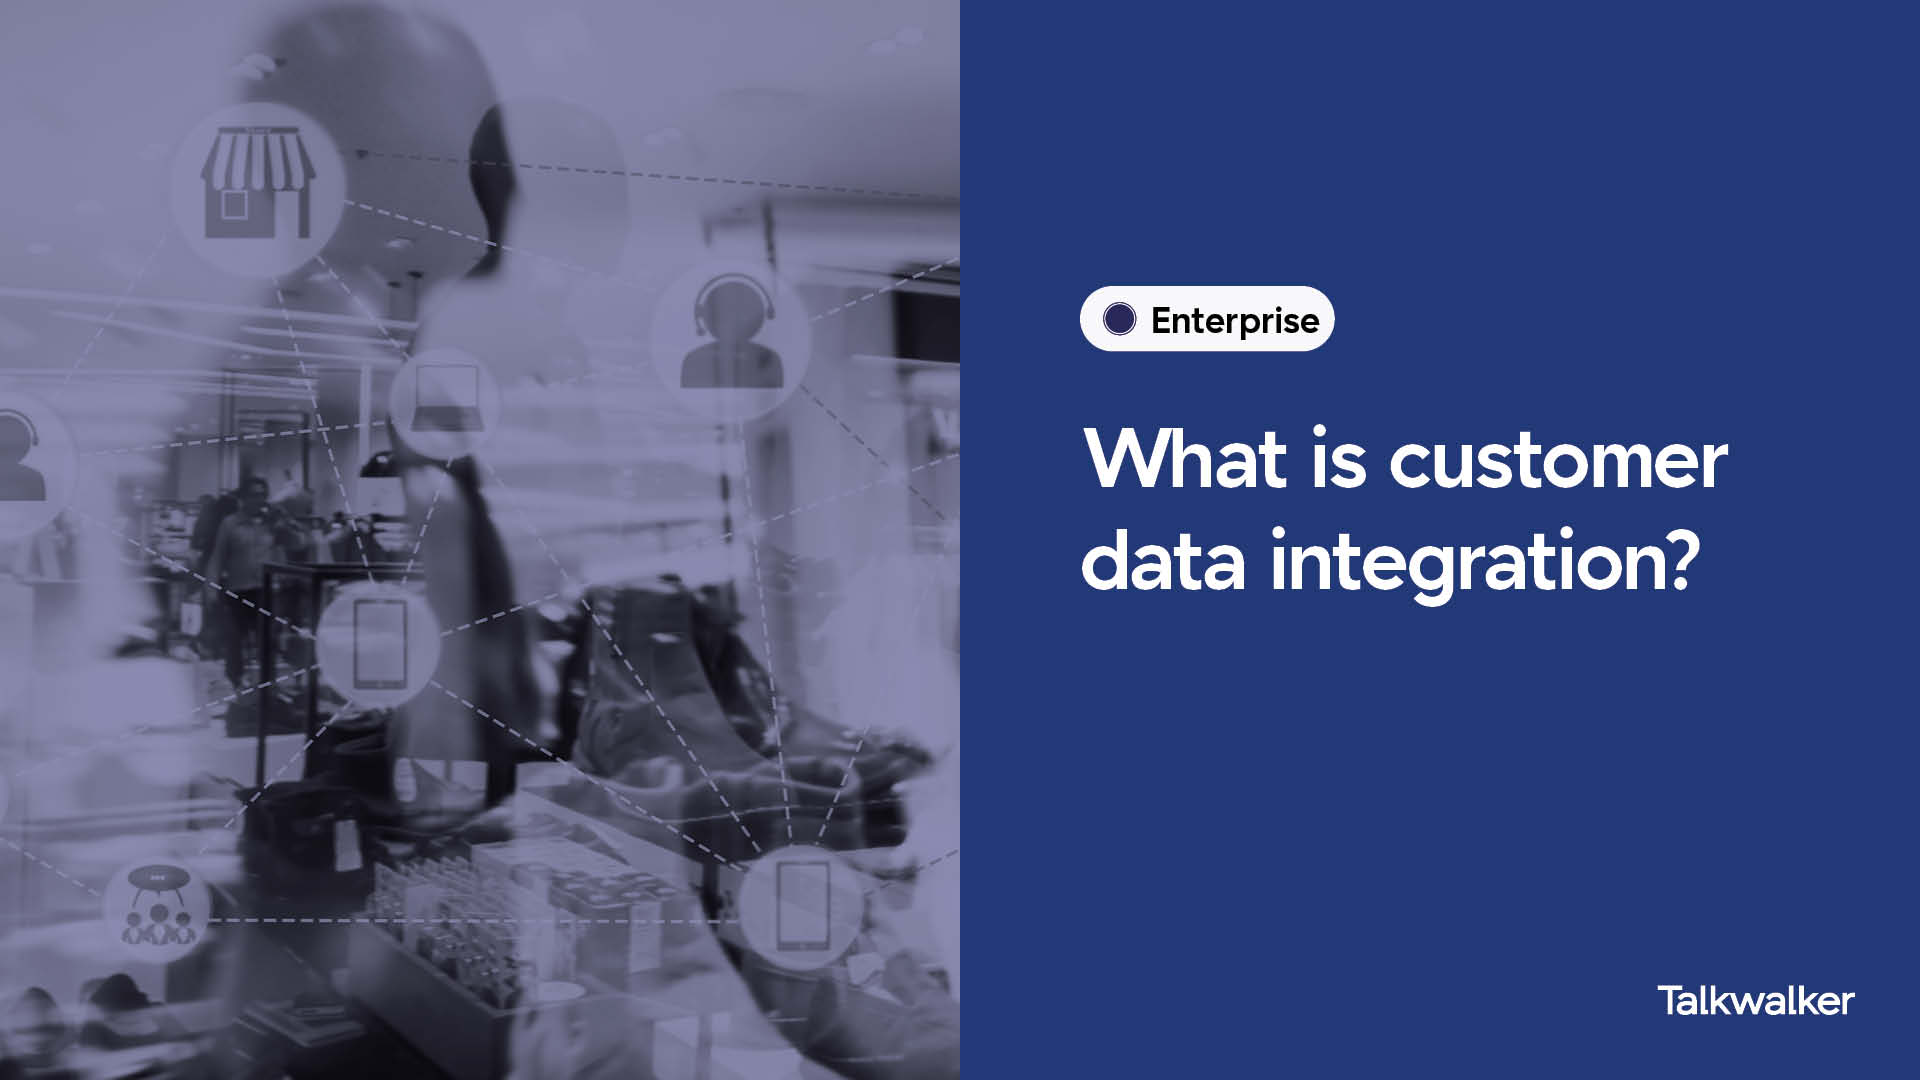 Title - What is customer data integration? Category - Enterprise. Shadow of a human figure with various images representing customer touchpoints with a company.